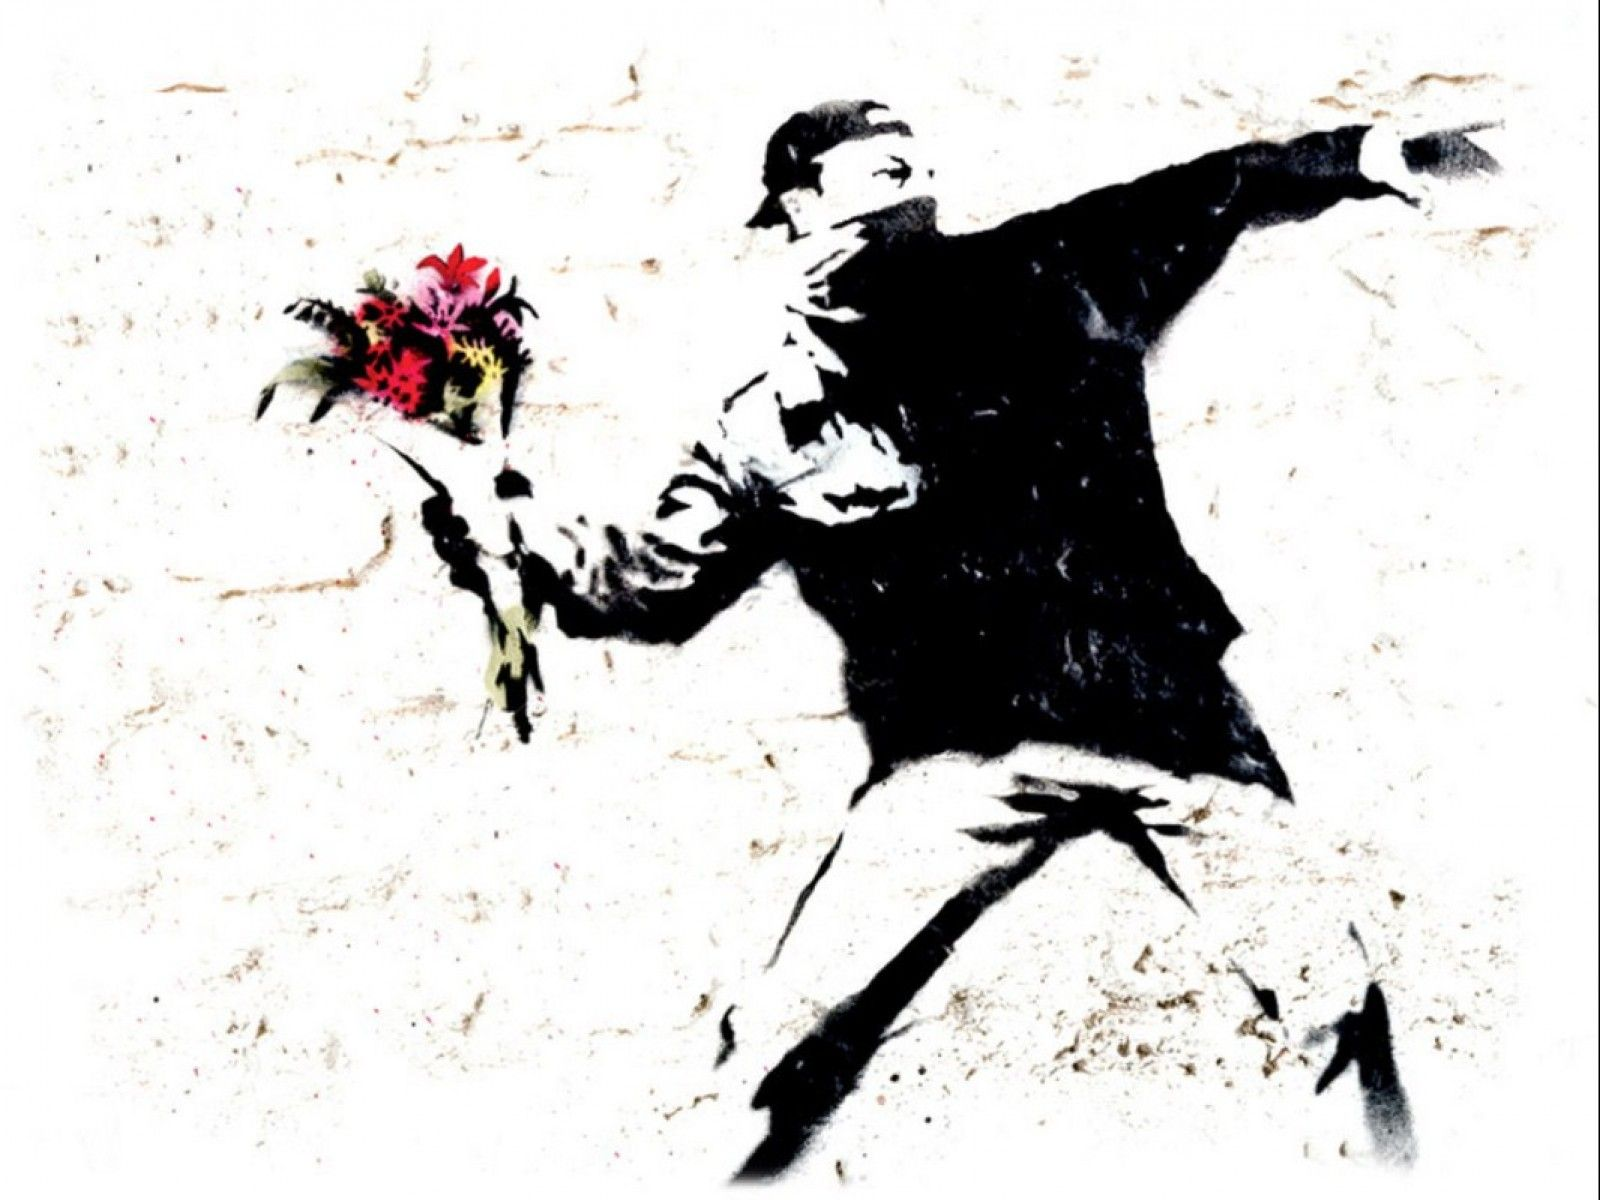 Banksy Hd Wallpaper: Image Detail For -Banksy Wallpaper, Wall Art